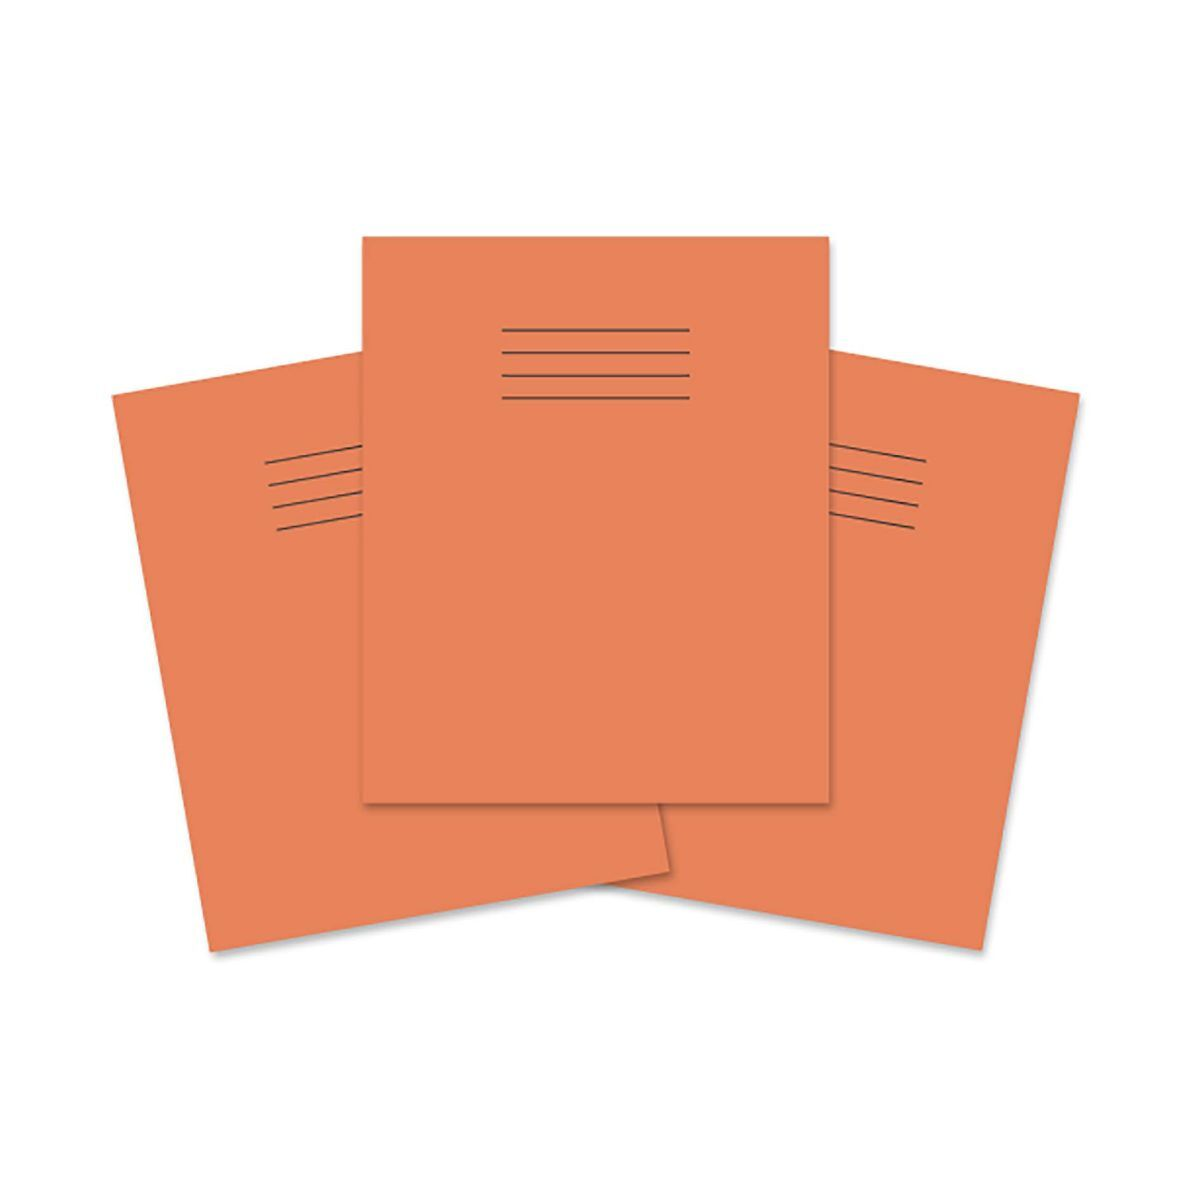 Rhino Exercise Book 8 inch x 6.5 Inch 48 Pages 5mm Squares Pack of 100 Orange